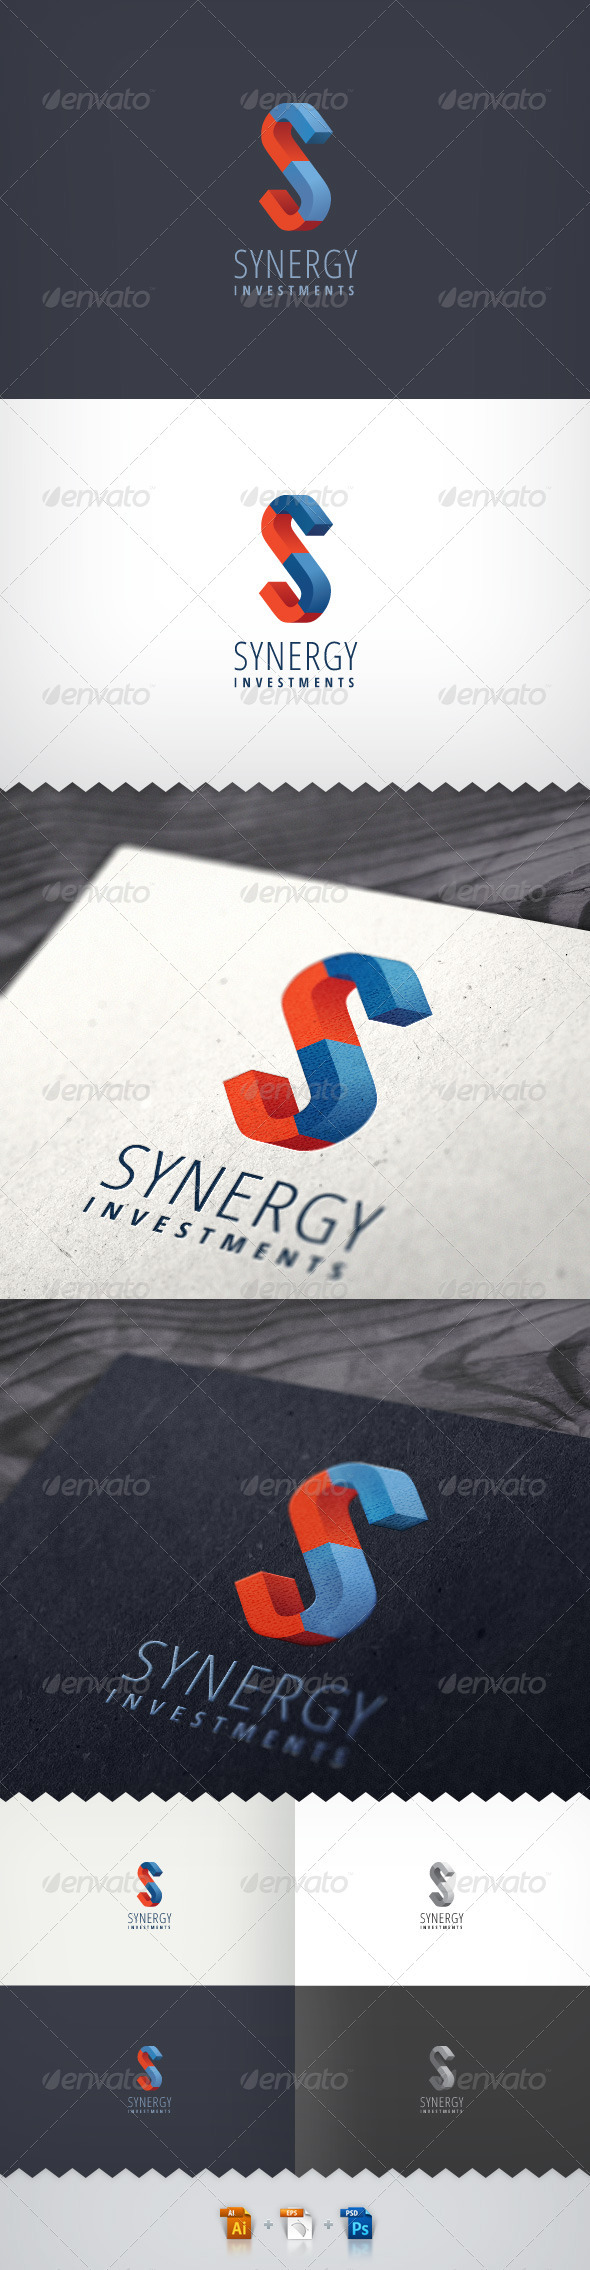 Synergy Investments Logo - Letters Logo Templates